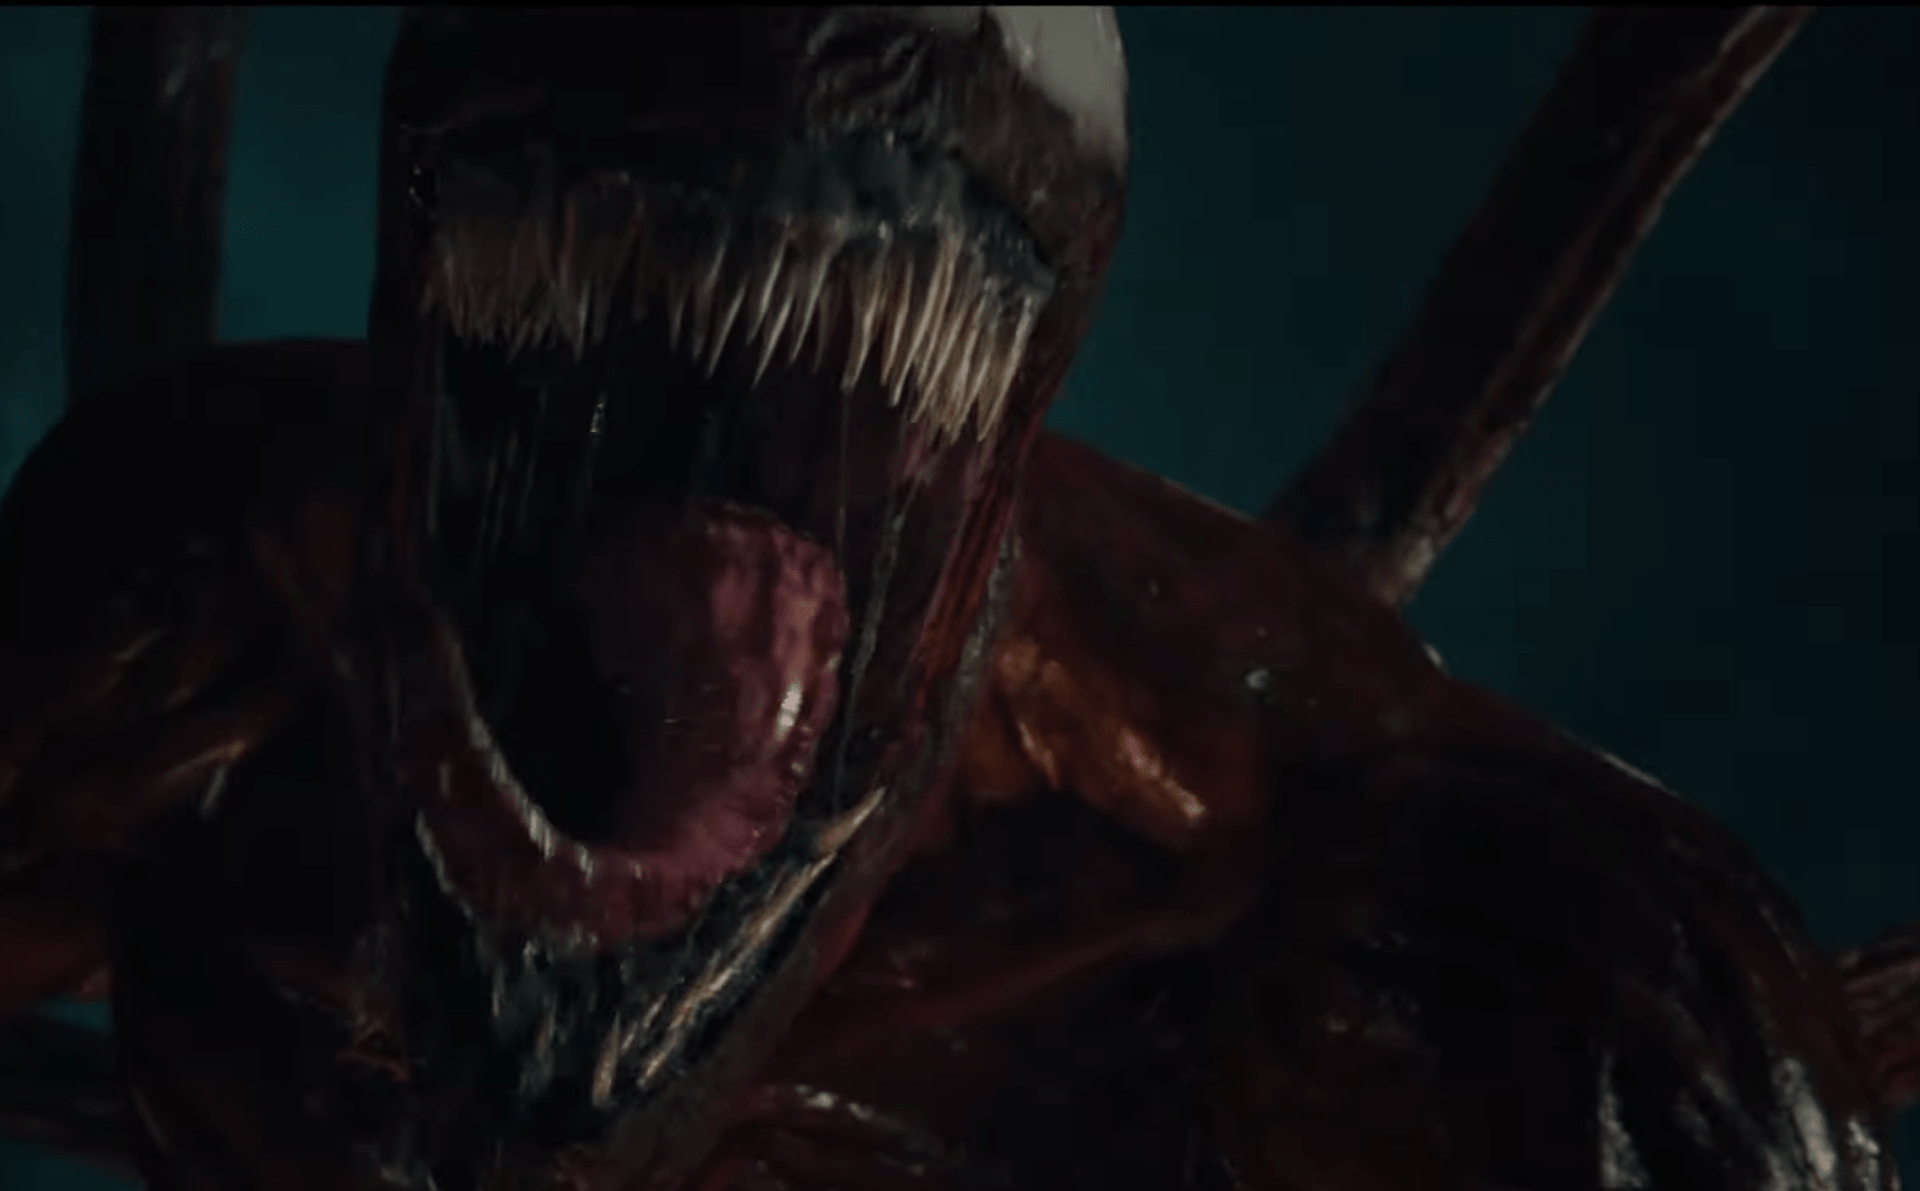 [Watch] 'Venom: Let There Be Carnage' trailer 2